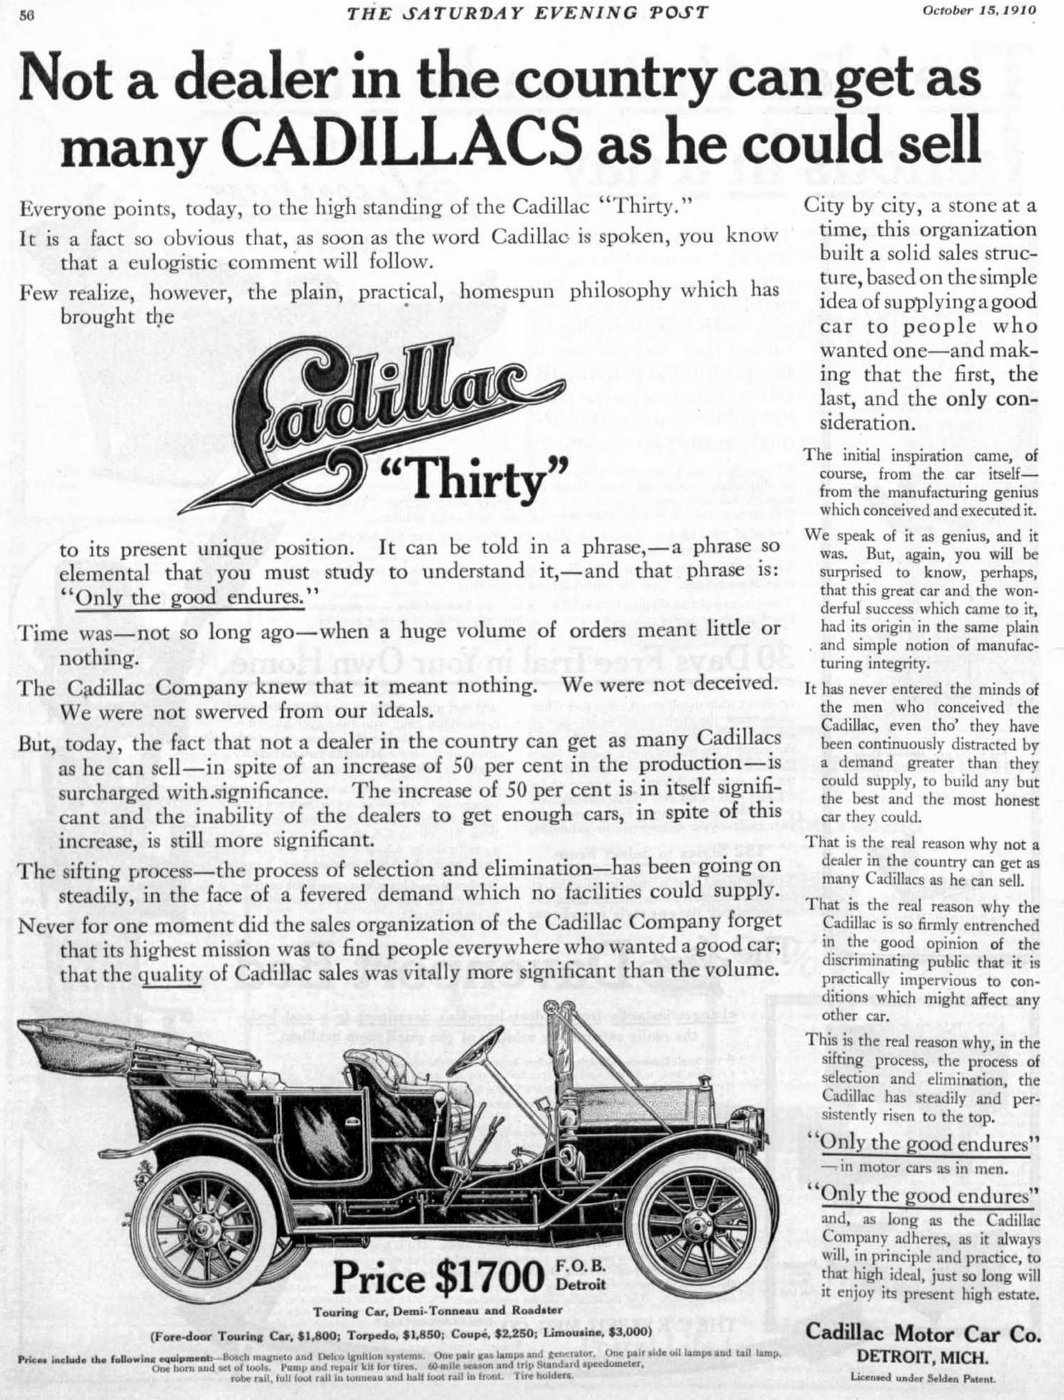 Vintage Cadillac car ad from 1910 1911